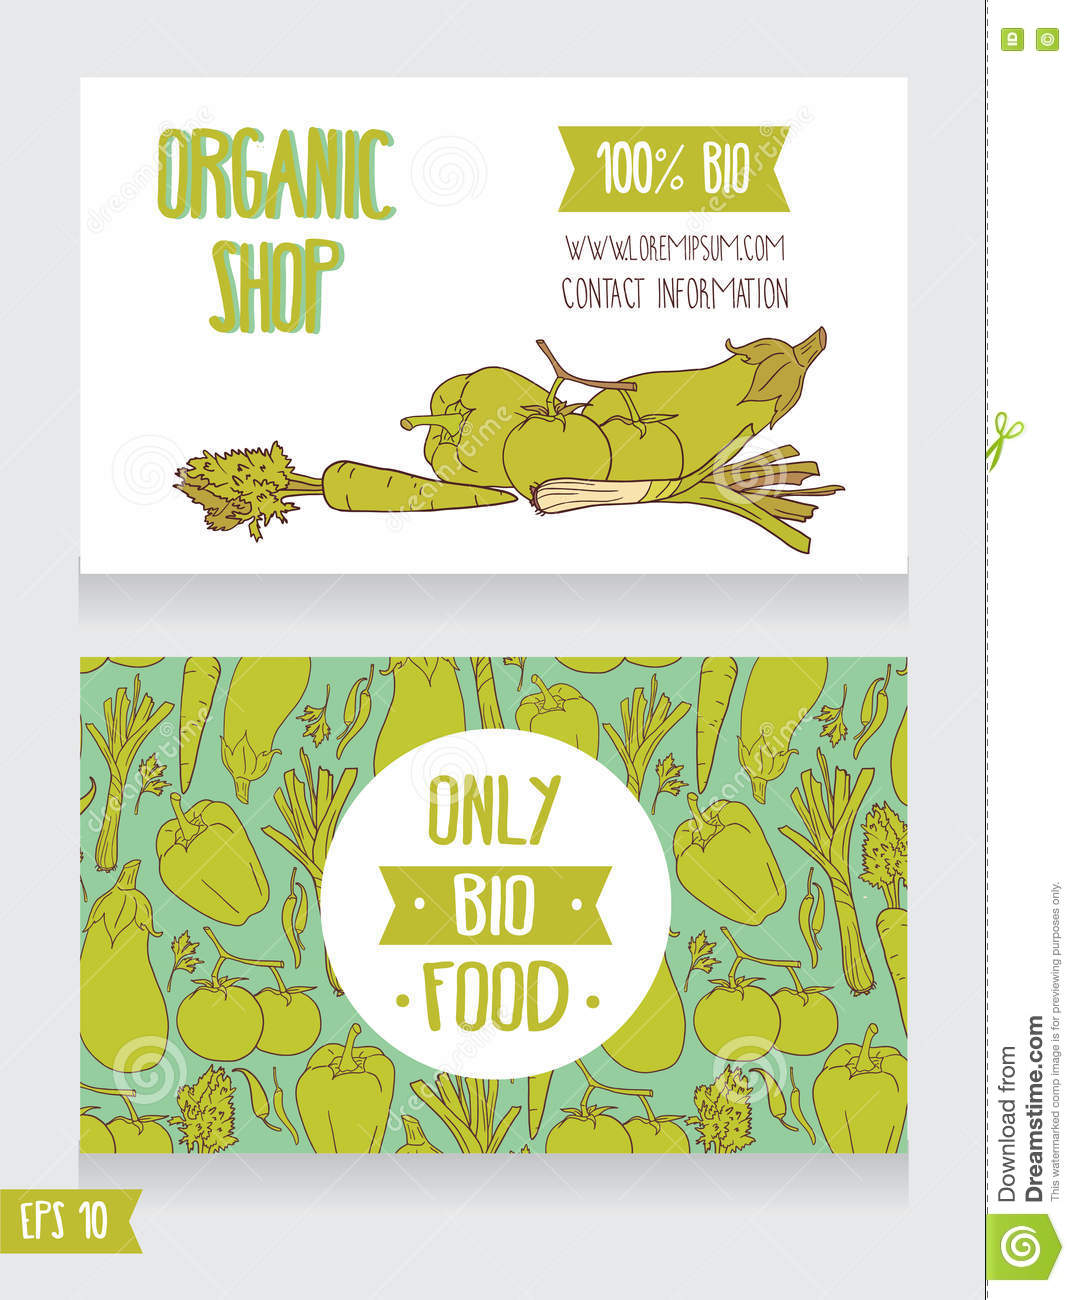 Promo Cards Template For Organic Foods Shop Stock Vector